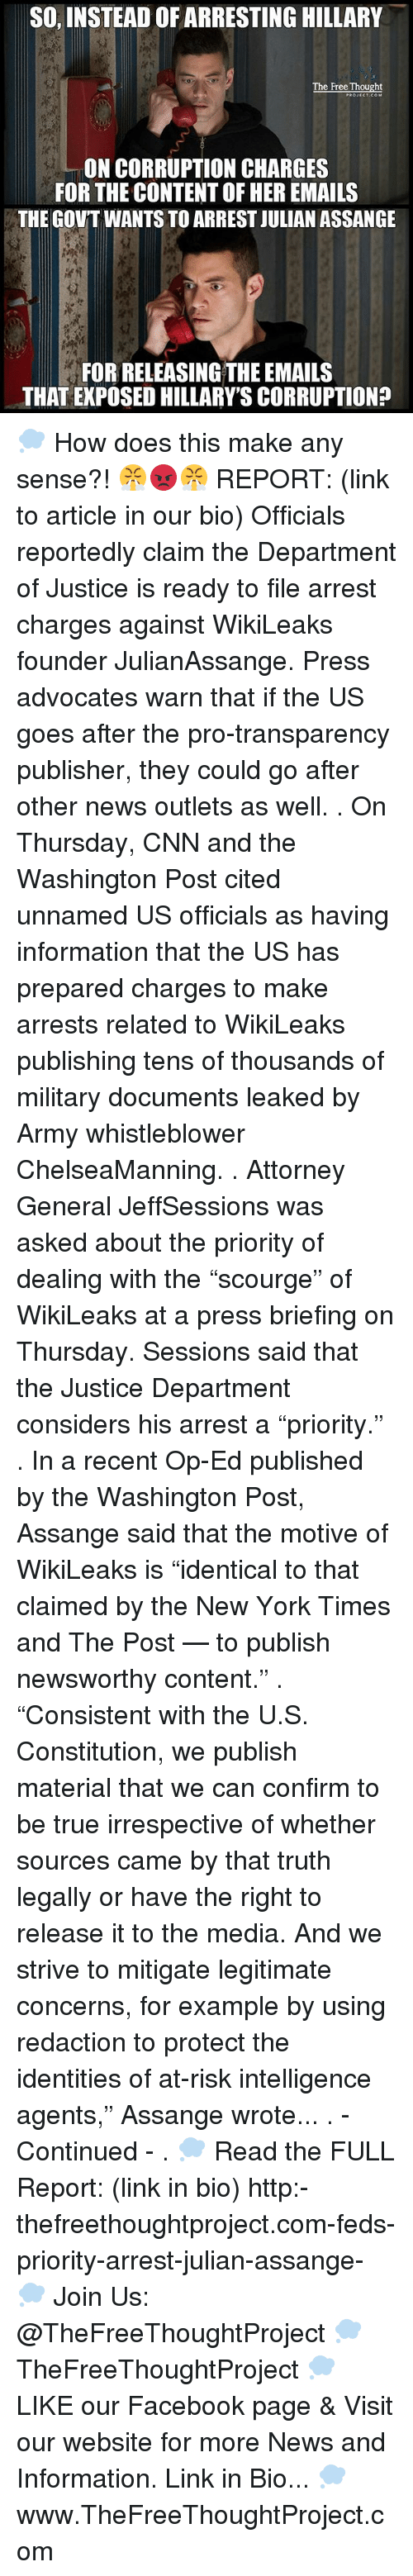 """warne: SO, INSTEAD OFARRESTING HILLARY  The Free Thought  ON CORRUPTION CHARGES  FOR THE CONTENT OF HEREMAILS  THE GOVT WANTS TO ARREST JULIAN ASSANGE  FOR RELEASING THE EMAILS  THAT EXPOSED HILLARY'S CORRUPTION? 💭 How does this make any sense?! 😤😡😤 REPORT: (link to article in our bio) Officials reportedly claim the Department of Justice is ready to file arrest charges against WikiLeaks founder JulianAssange. Press advocates warn that if the US goes after the pro-transparency publisher, they could go after other news outlets as well. . On Thursday, CNN and the Washington Post cited unnamed US officials as having information that the US has prepared charges to make arrests related to WikiLeaks publishing tens of thousands of military documents leaked by Army whistleblower ChelseaManning. . Attorney General JeffSessions was asked about the priority of dealing with the """"scourge"""" of WikiLeaks at a press briefing on Thursday. Sessions said that the Justice Department considers his arrest a """"priority."""" . In a recent Op-Ed published by the Washington Post, Assange said that the motive of WikiLeaks is """"identical to that claimed by the New York Times and The Post — to publish newsworthy content."""" . """"Consistent with the U.S. Constitution, we publish material that we can confirm to be true irrespective of whether sources came by that truth legally or have the right to release it to the media. And we strive to mitigate legitimate concerns, for example by using redaction to protect the identities of at-risk intelligence agents,"""" Assange wrote... . - Continued - . 💭 Read the FULL Report: (link in bio) http:-thefreethoughtproject.com-feds-priority-arrest-julian-assange- 💭 Join Us: @TheFreeThoughtProject 💭 TheFreeThoughtProject 💭 LIKE our Facebook page & Visit our website for more News and Information. Link in Bio... 💭 www.TheFreeThoughtProject.com"""